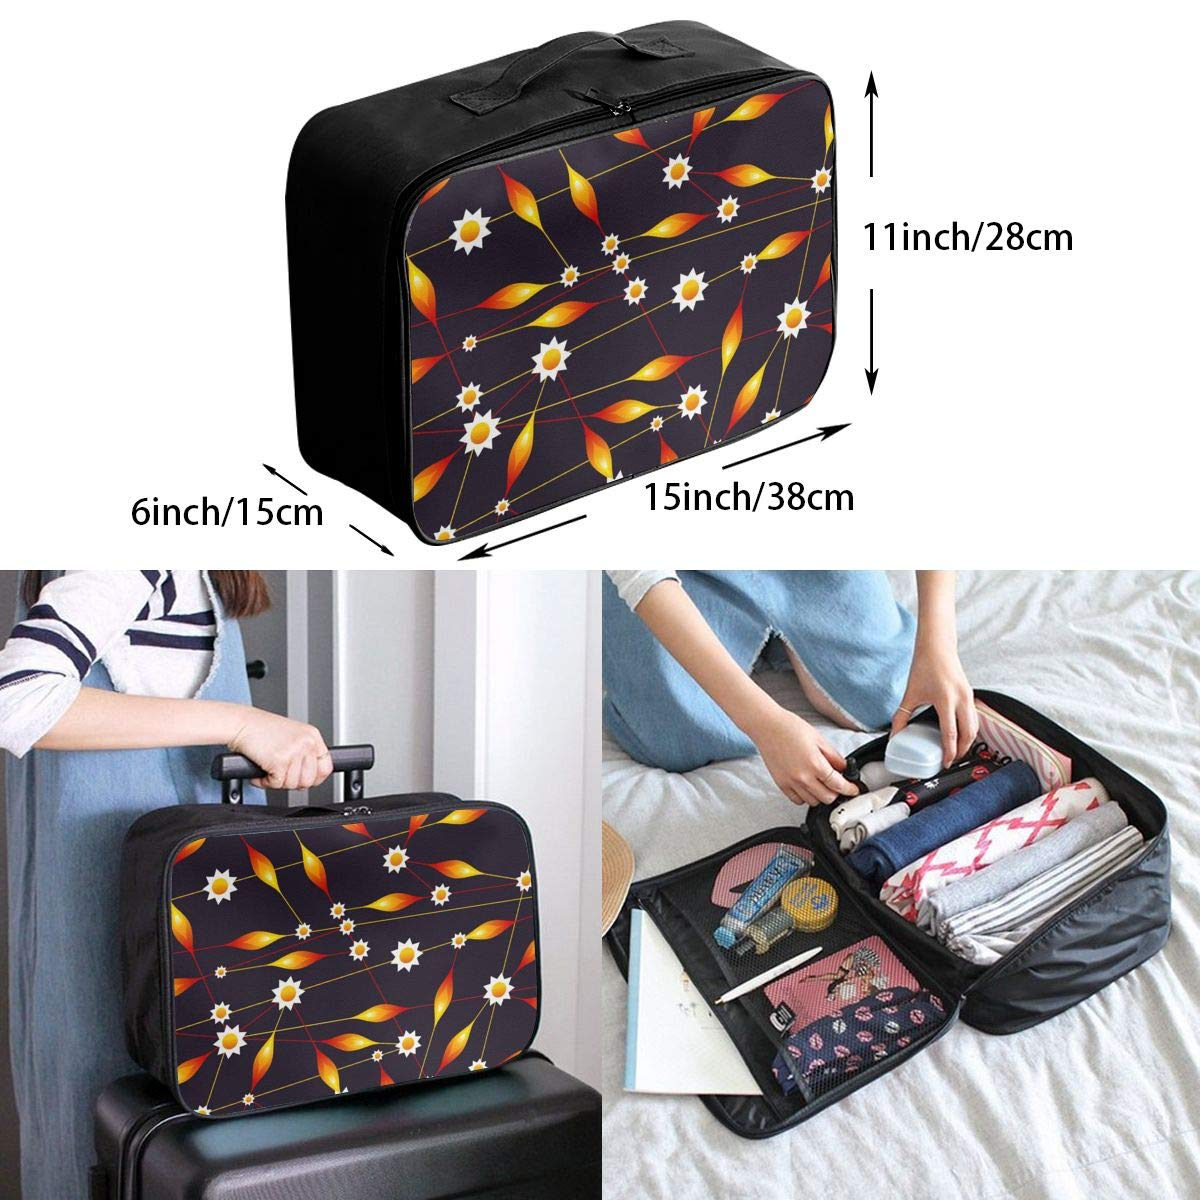 Flower Bud Pattern Orange Travel Lightweight Waterproof Foldable Storage Carry Luggage Large Capacity Portable Luggage Bag Duffel Bag